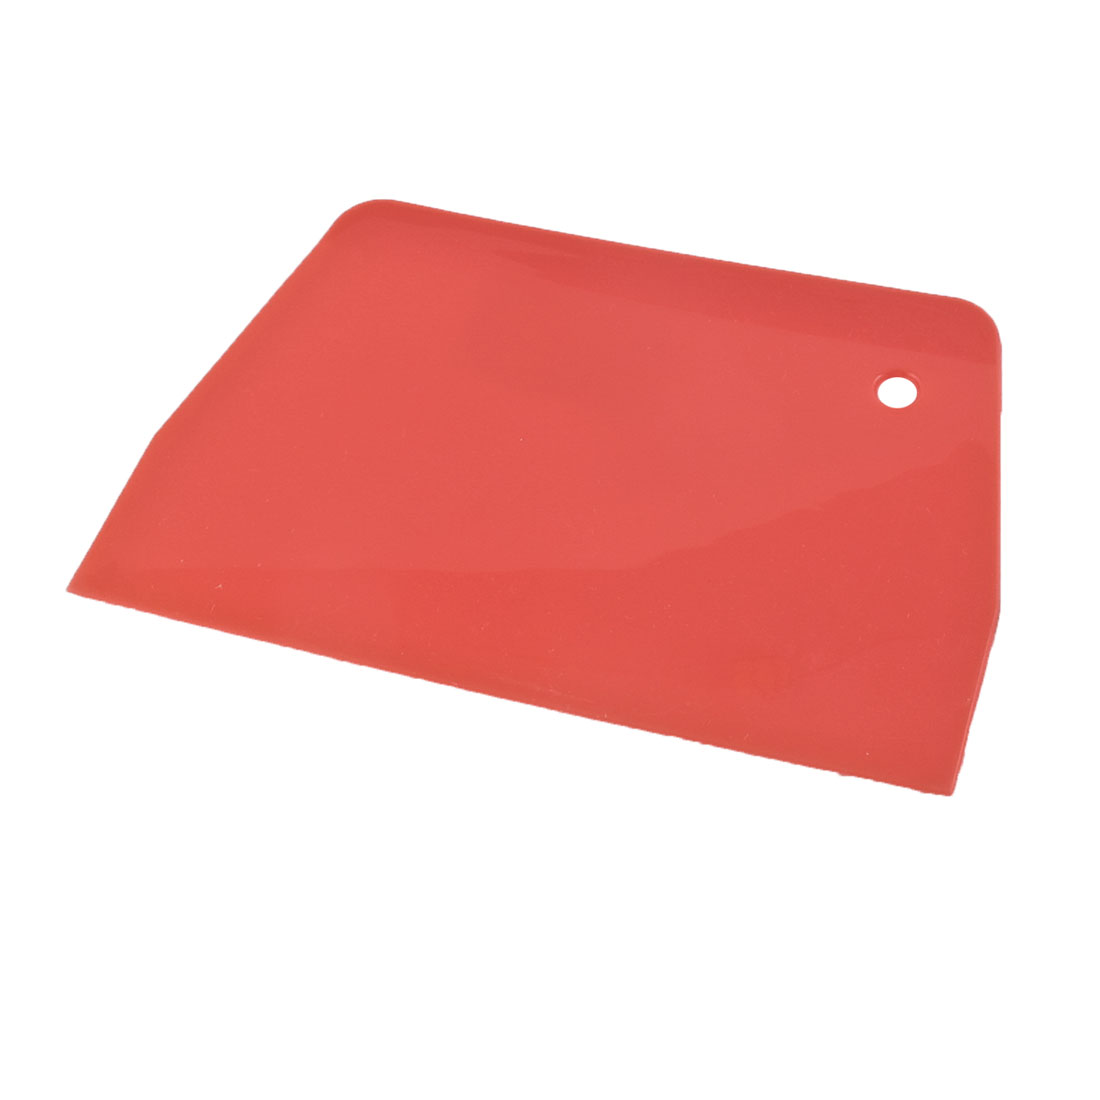 """5.5"""" Long 3.7"""" Wide 3mm Thick Trapezoid Plastic Varnish Paint Cake Scraper Putty Spreader Red"""